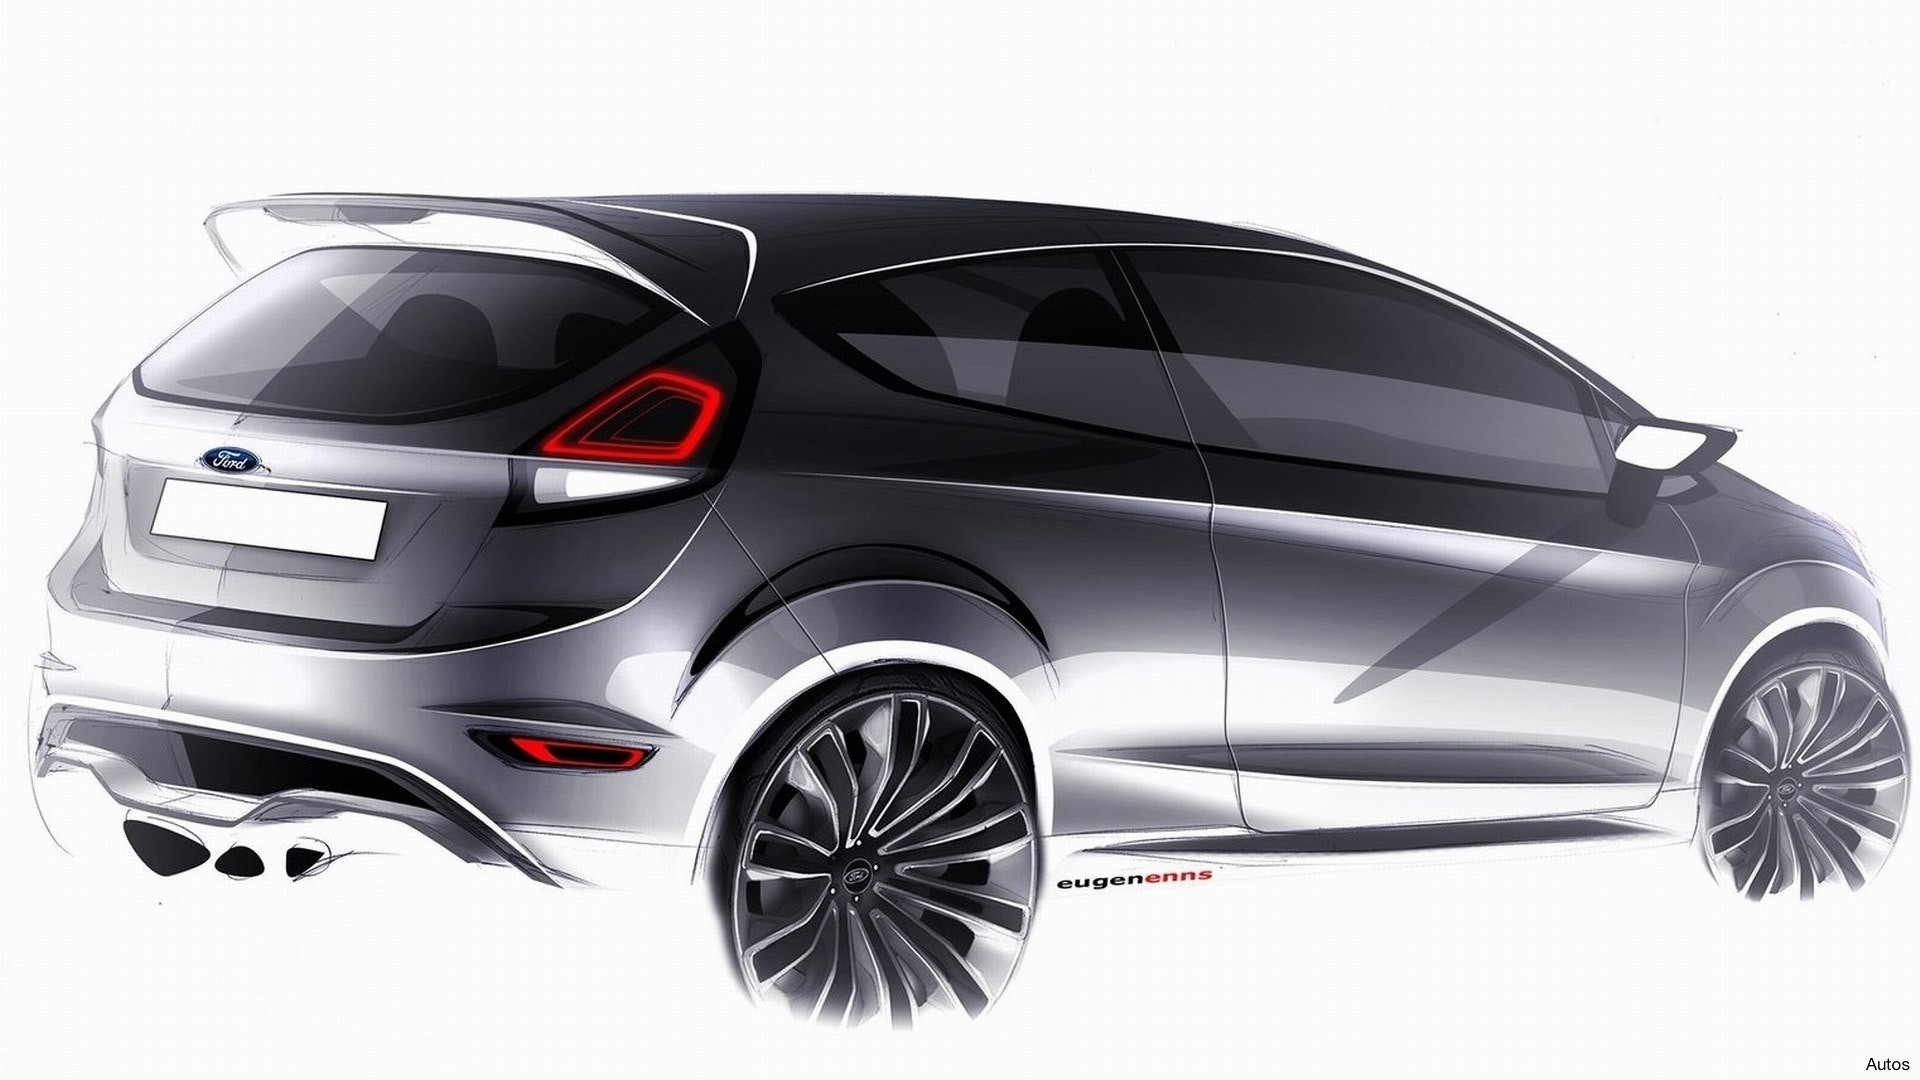 Res: 1920x1080, ... 164299559 Ford Fiesta Wallpapers Auto St Weiß Group 85 21 X ...